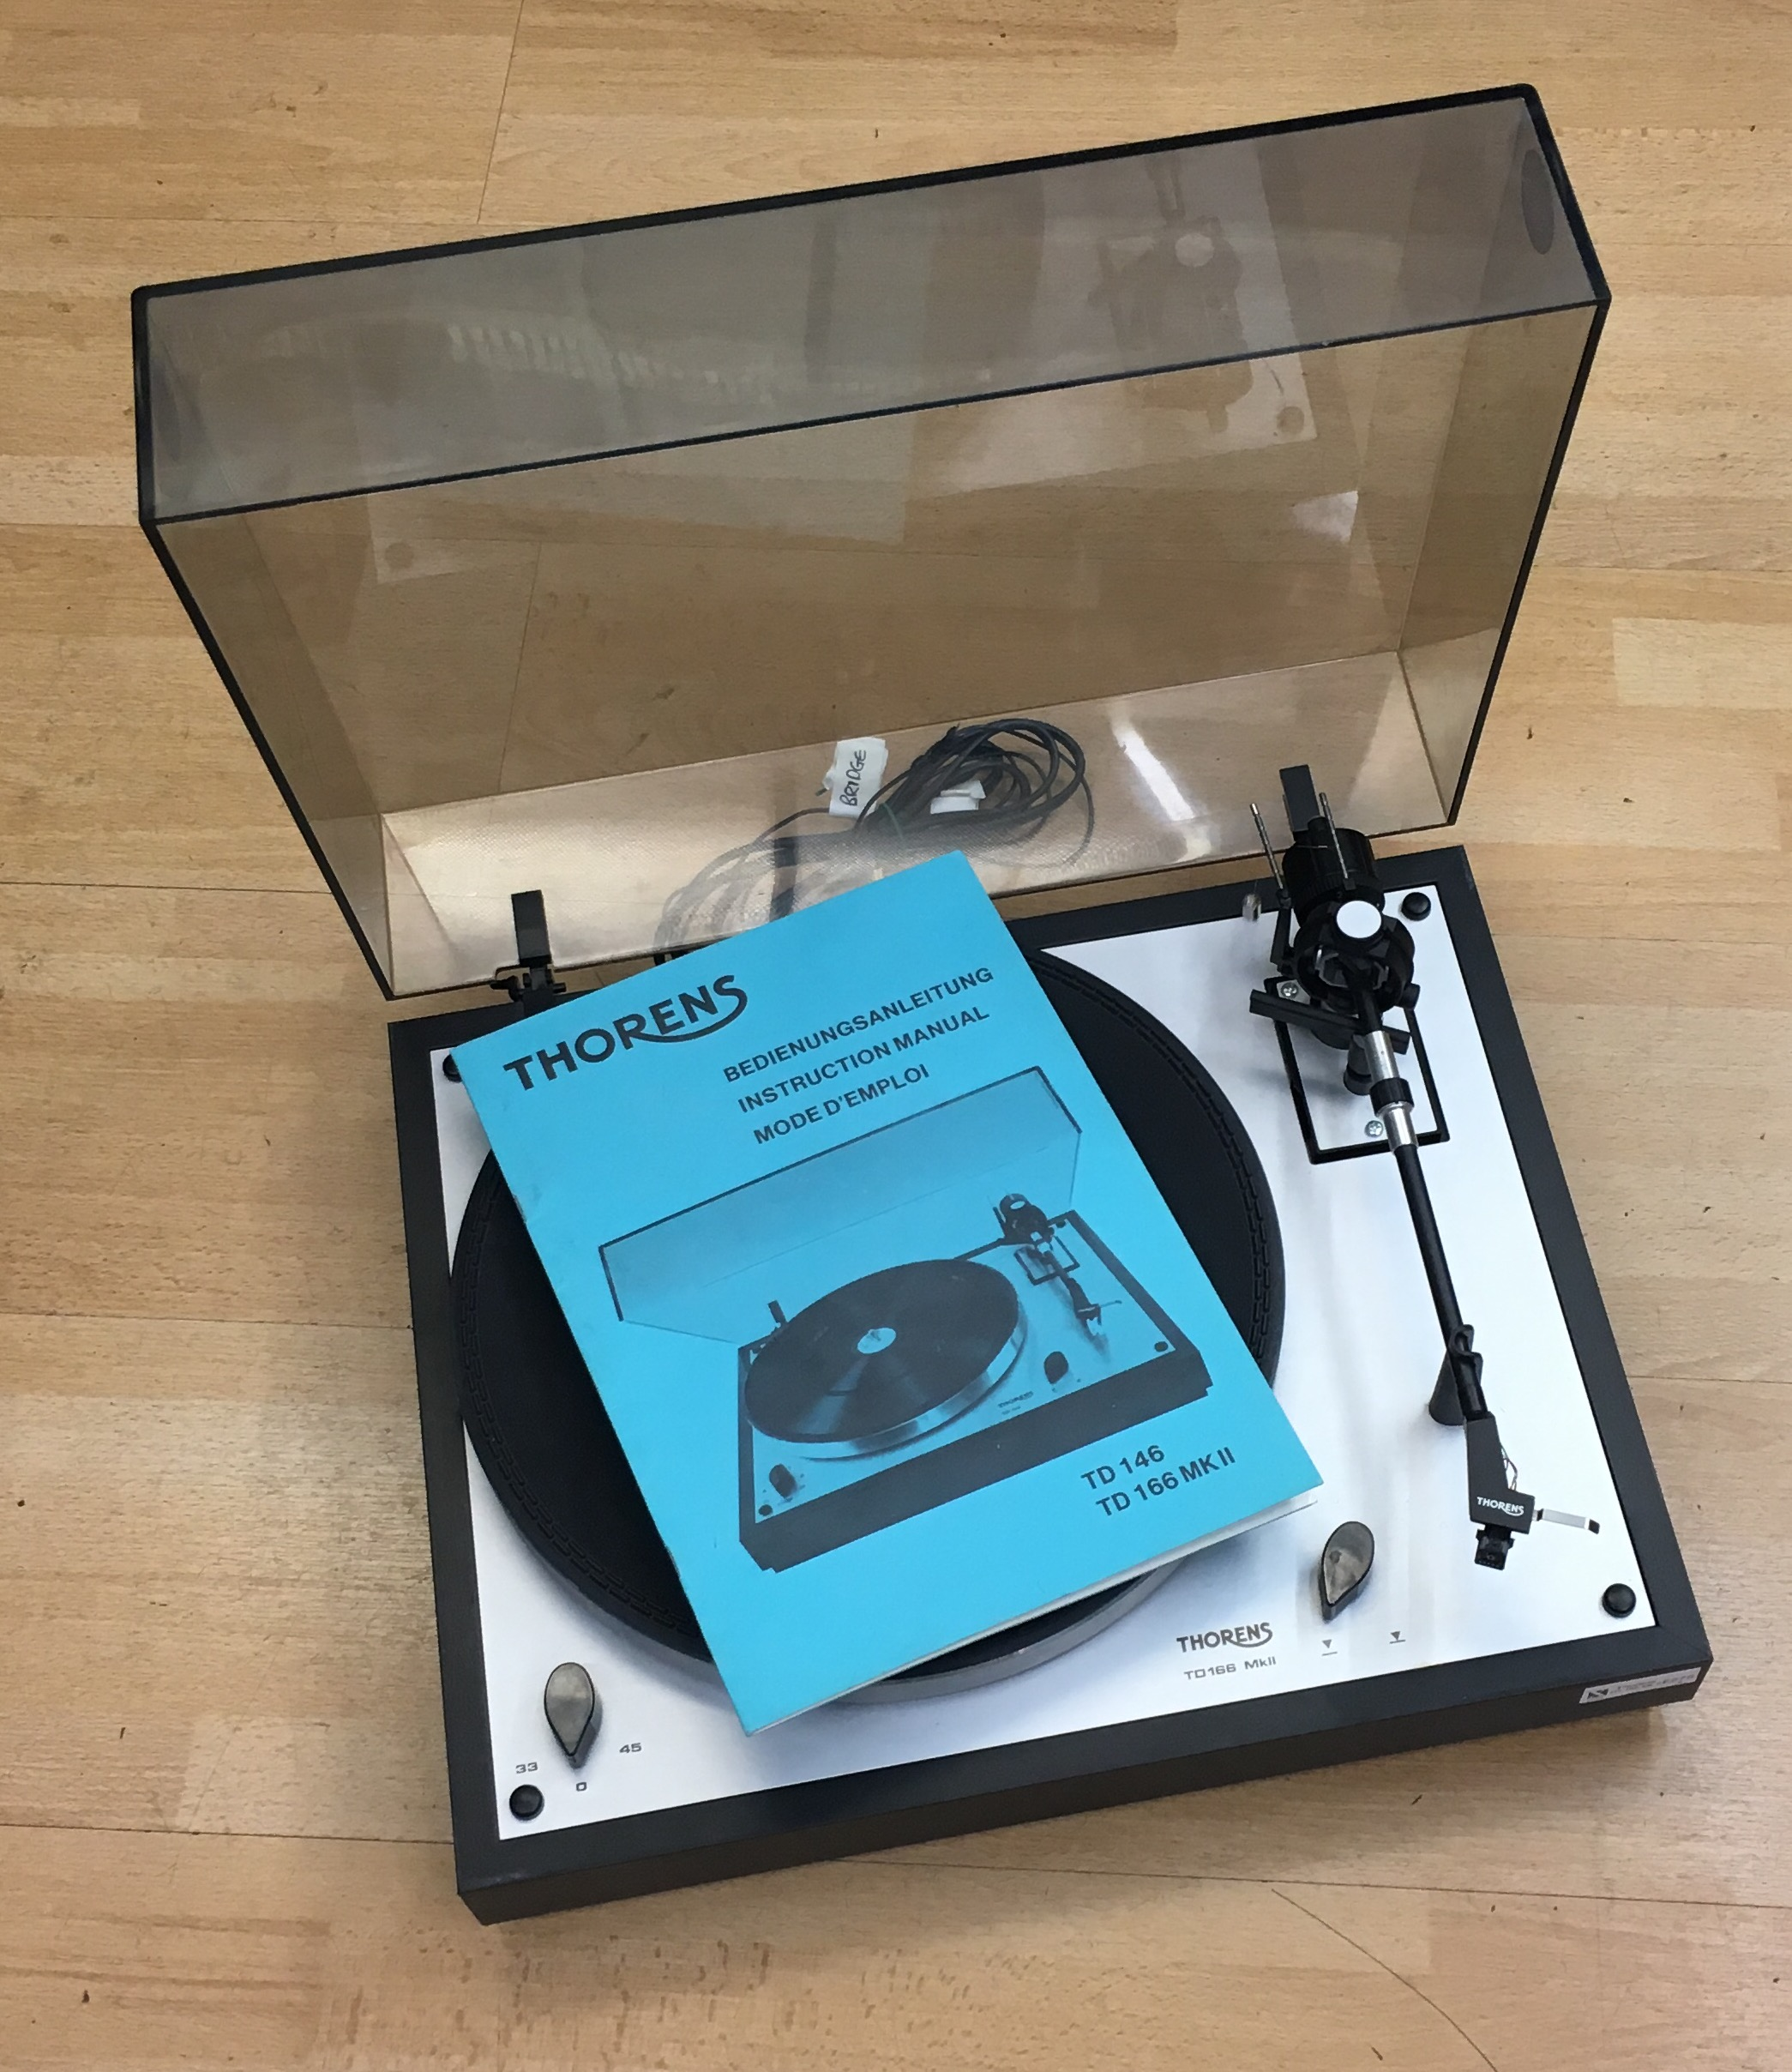 Thorens TD-166 Mk2 for sale at X Electrical